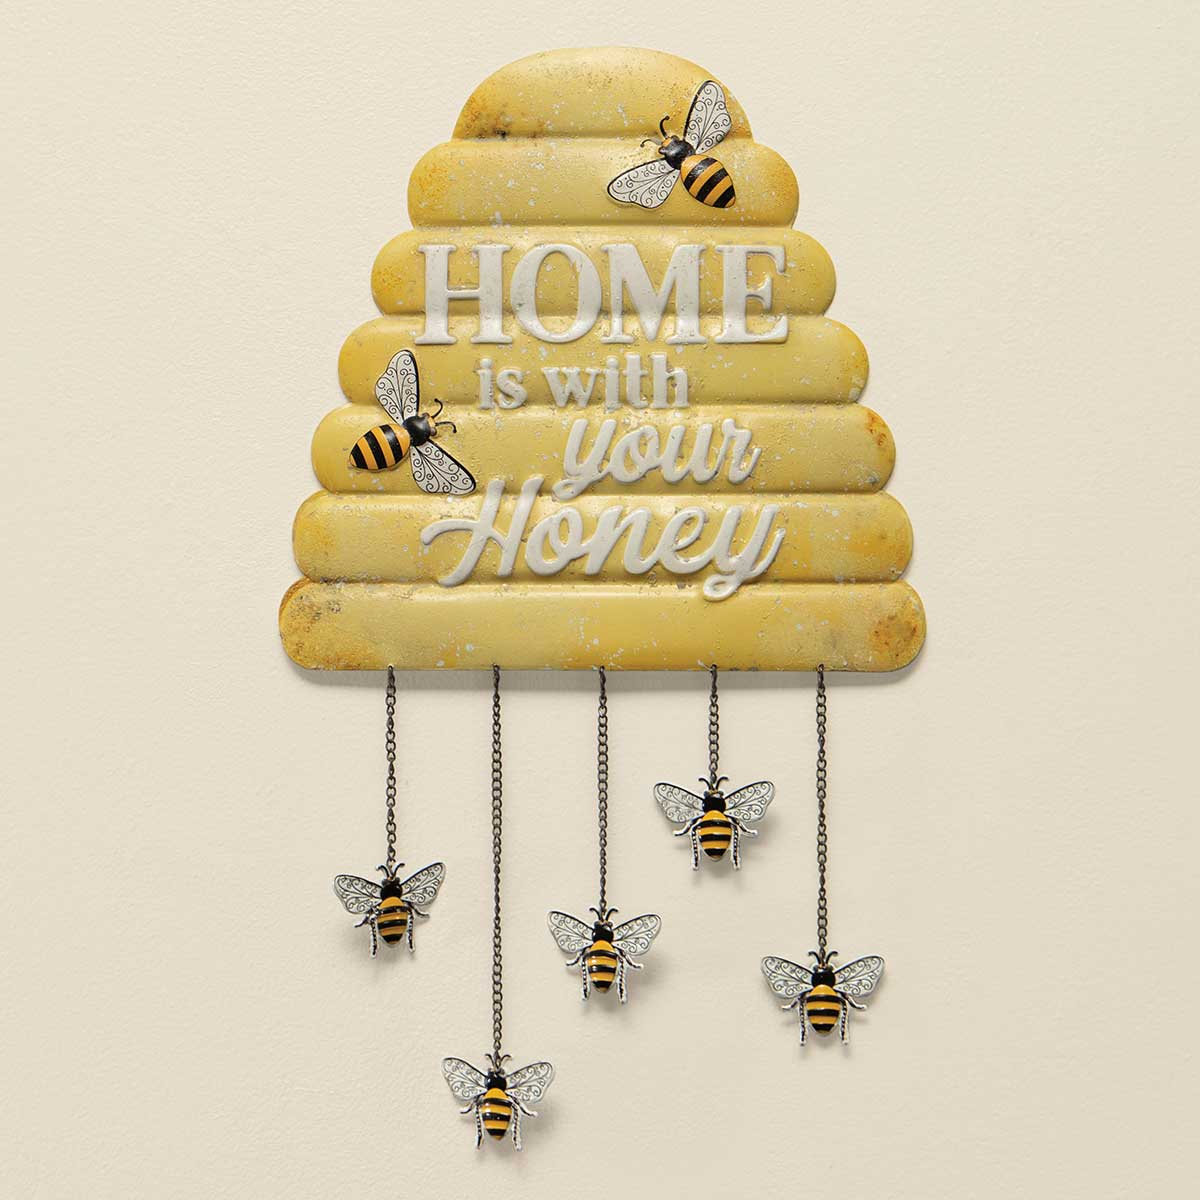 HOME IS W/YOUR HONEY METAL SIGN YELLOW WITH 5 METAL BEE CHIMES